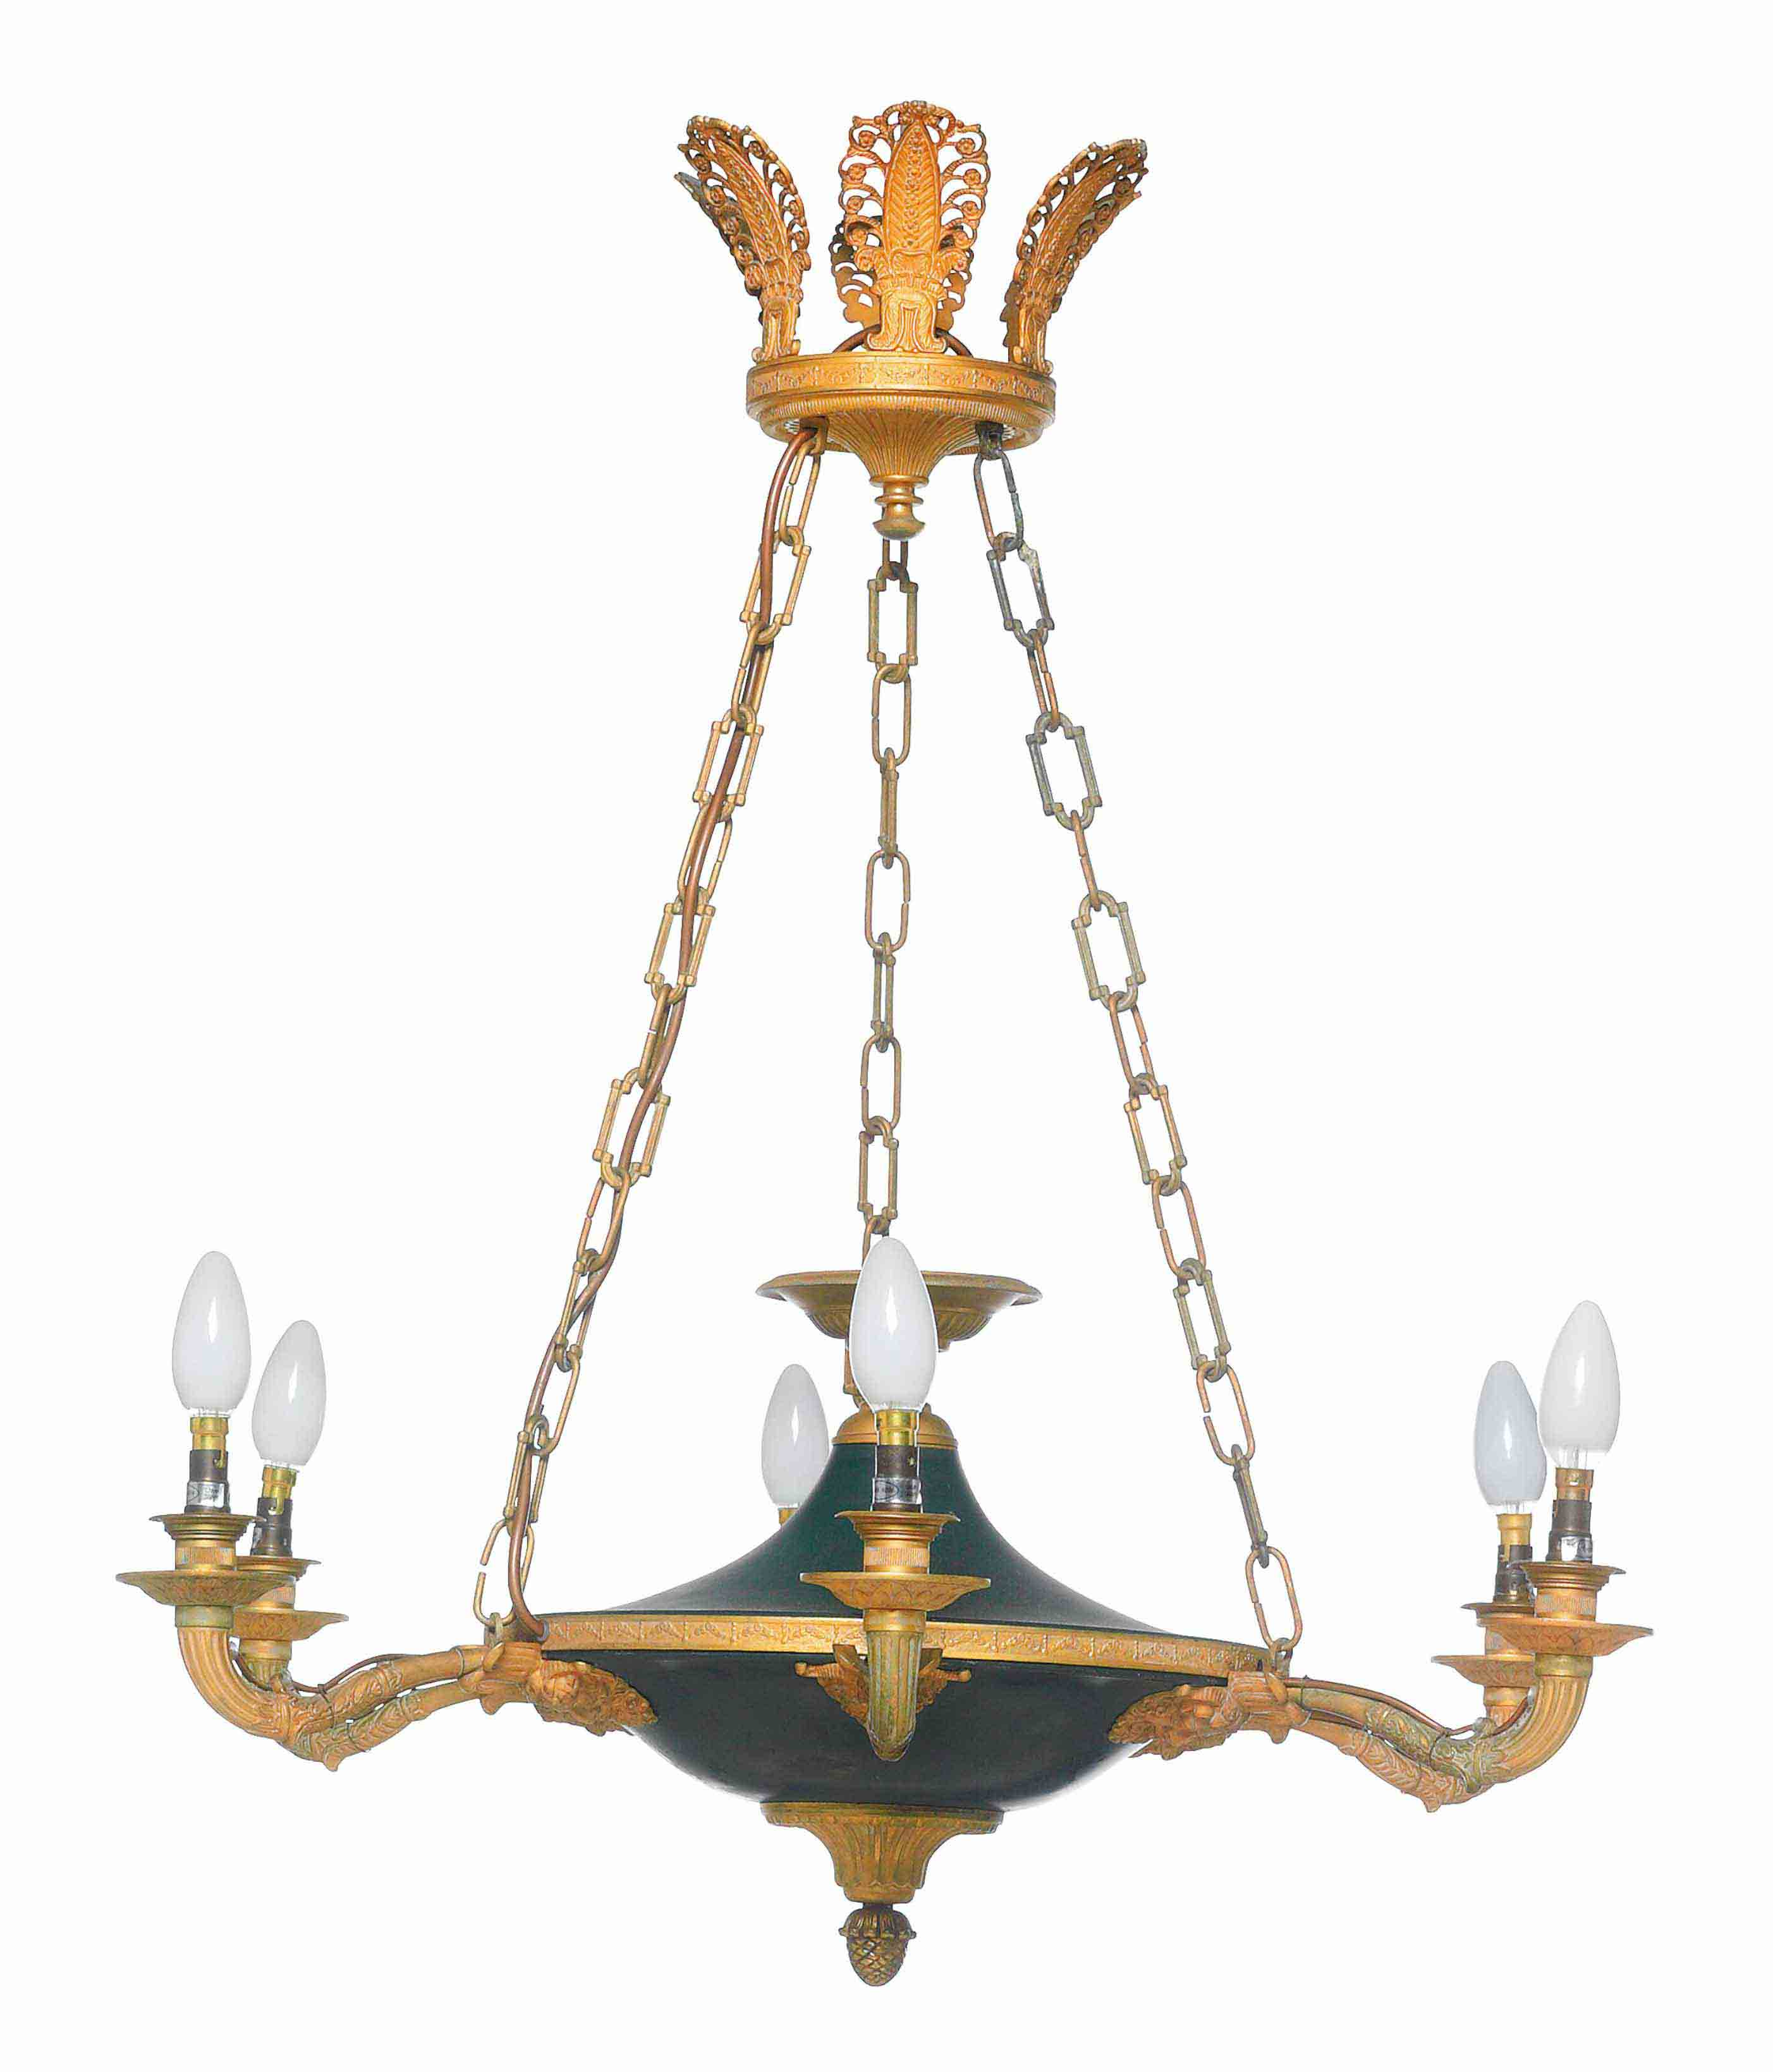 A GILT AND GREEN PATINATED BRONZE SIX-LIGHT CHANDELIER